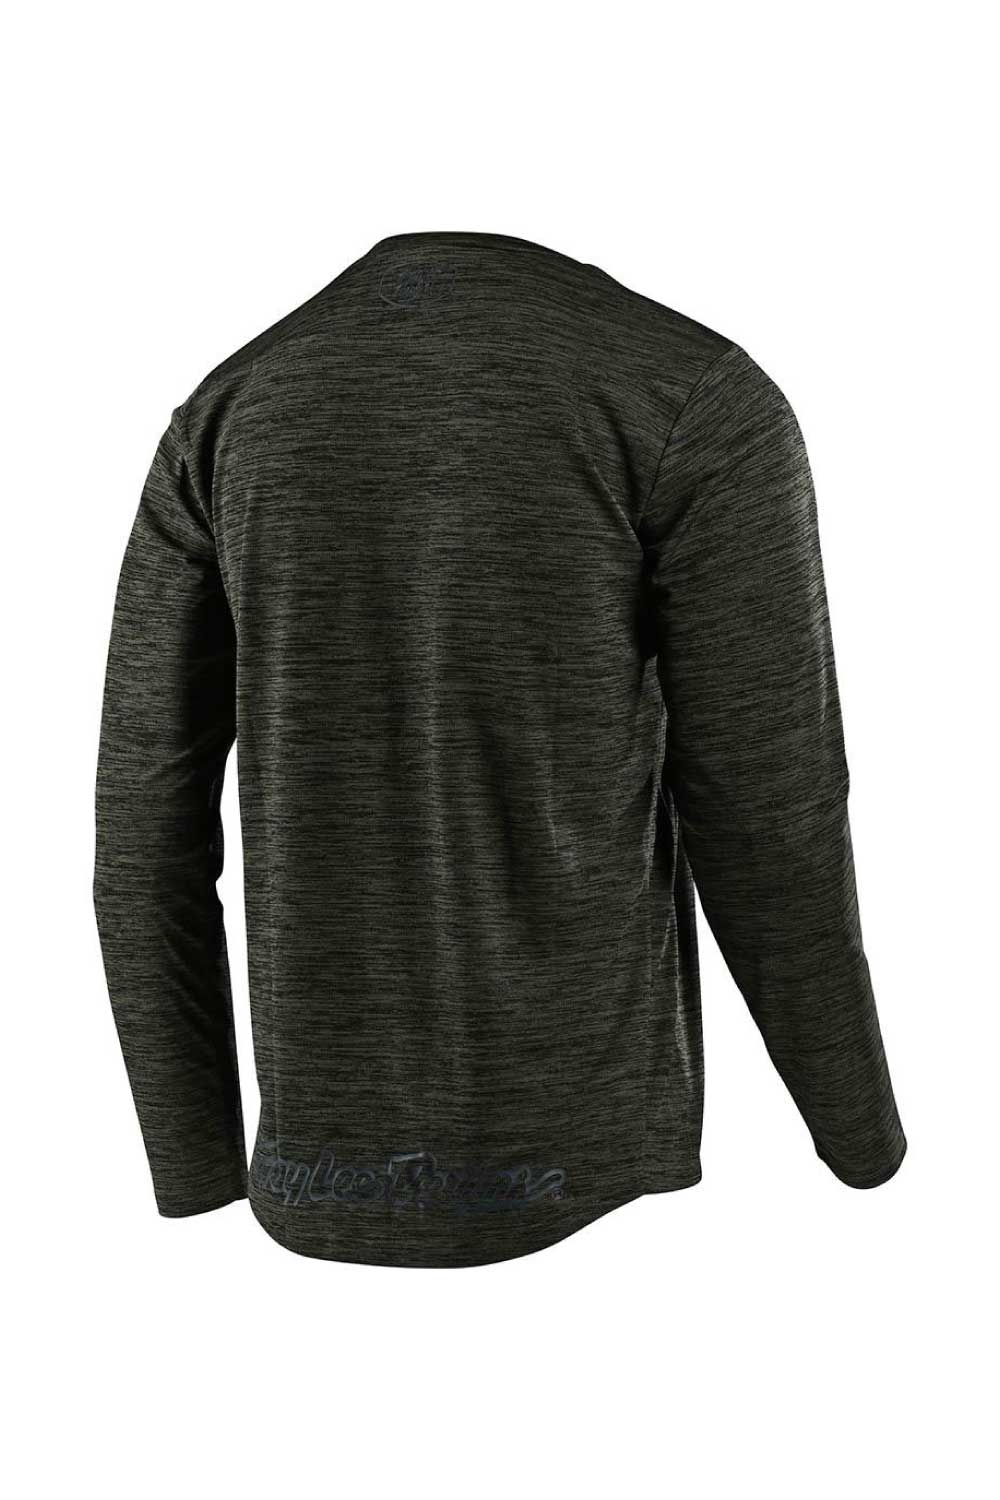 Troy Lee Designs 2020 Flowline Long Sleeve MTB Jersey